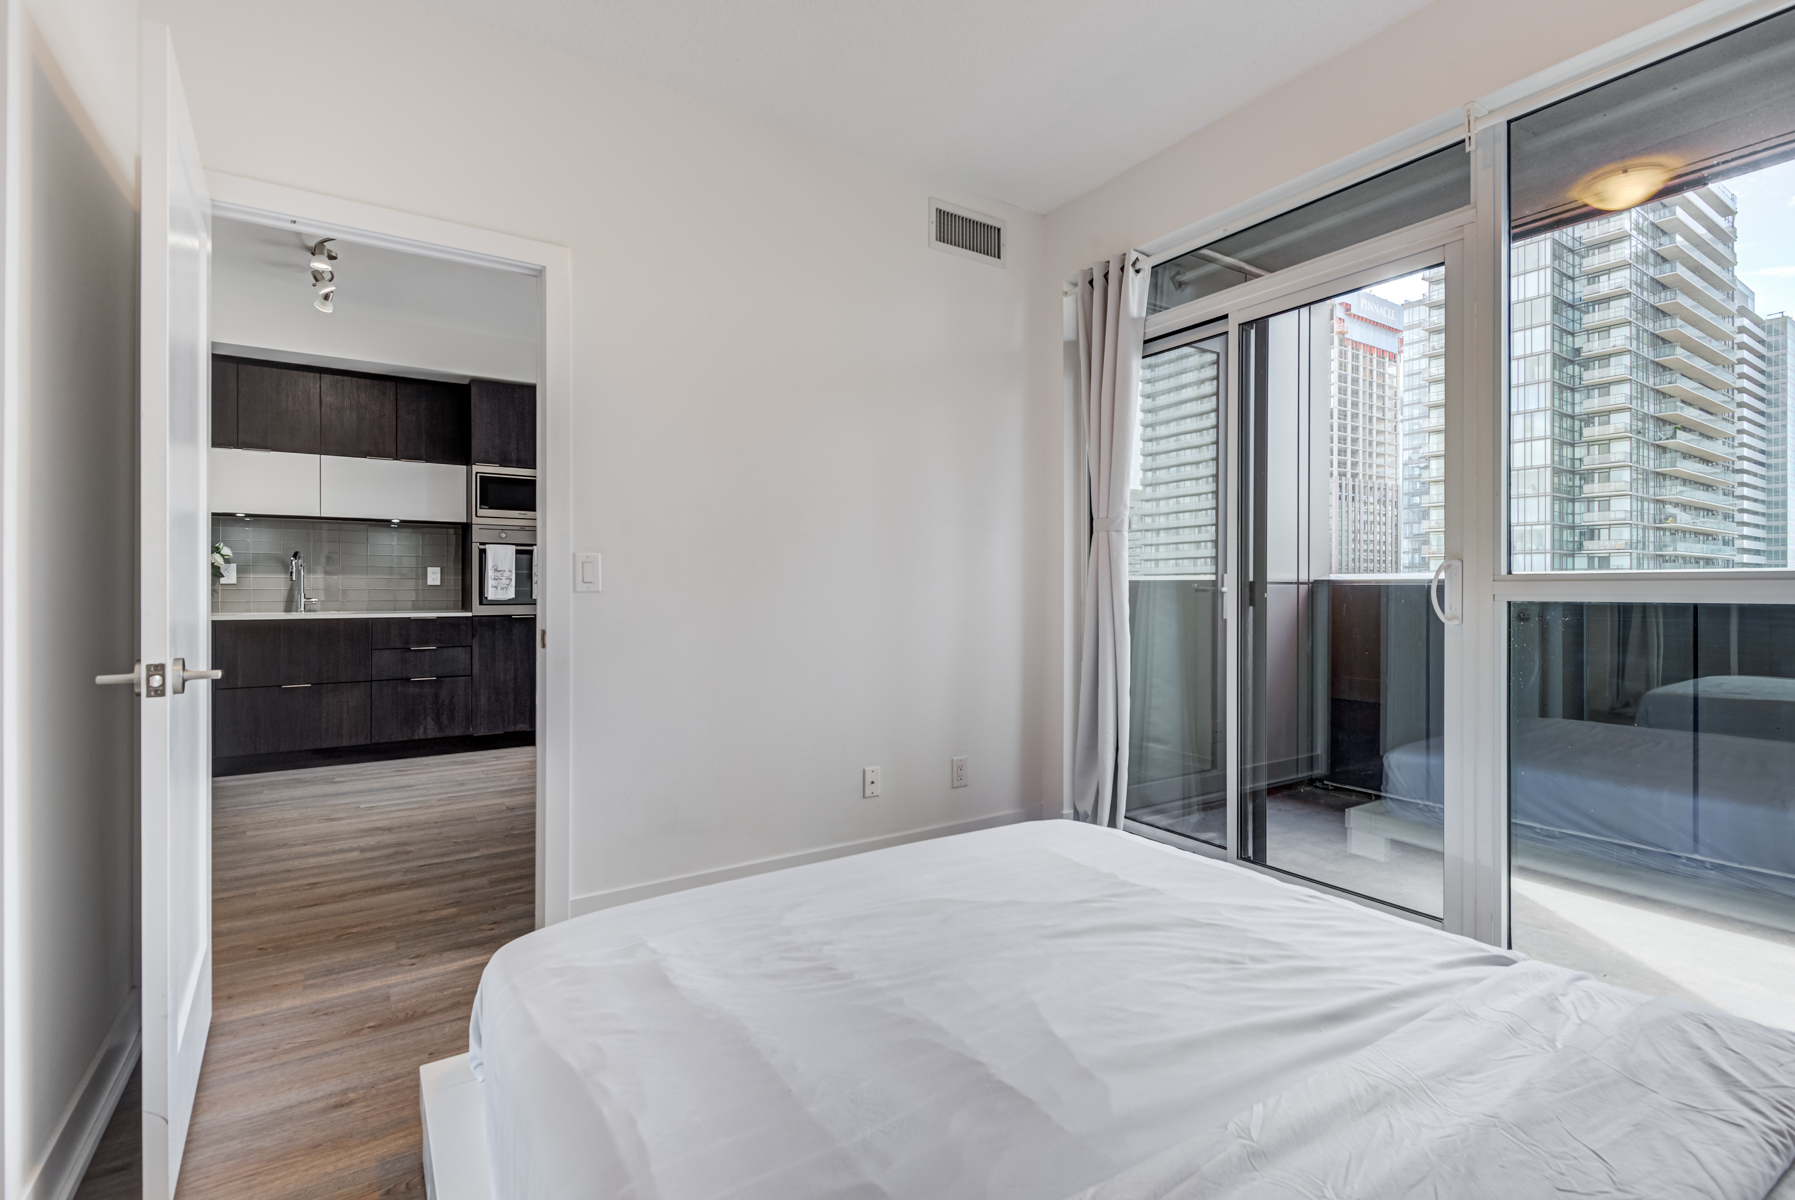 Condo bedroom with walk-out balcony showing Toronto in background.